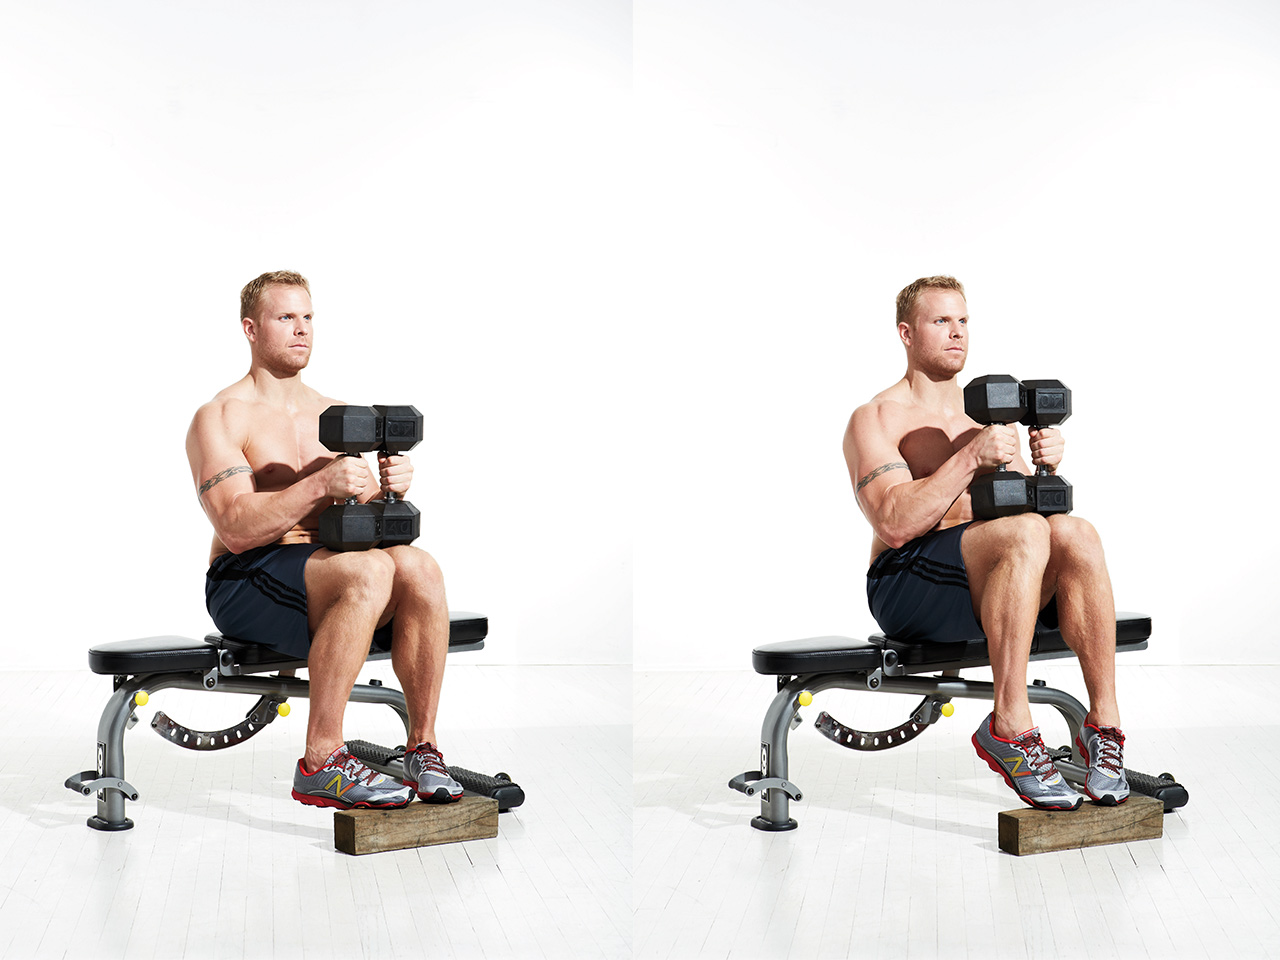 How to make your calves bigger without weights